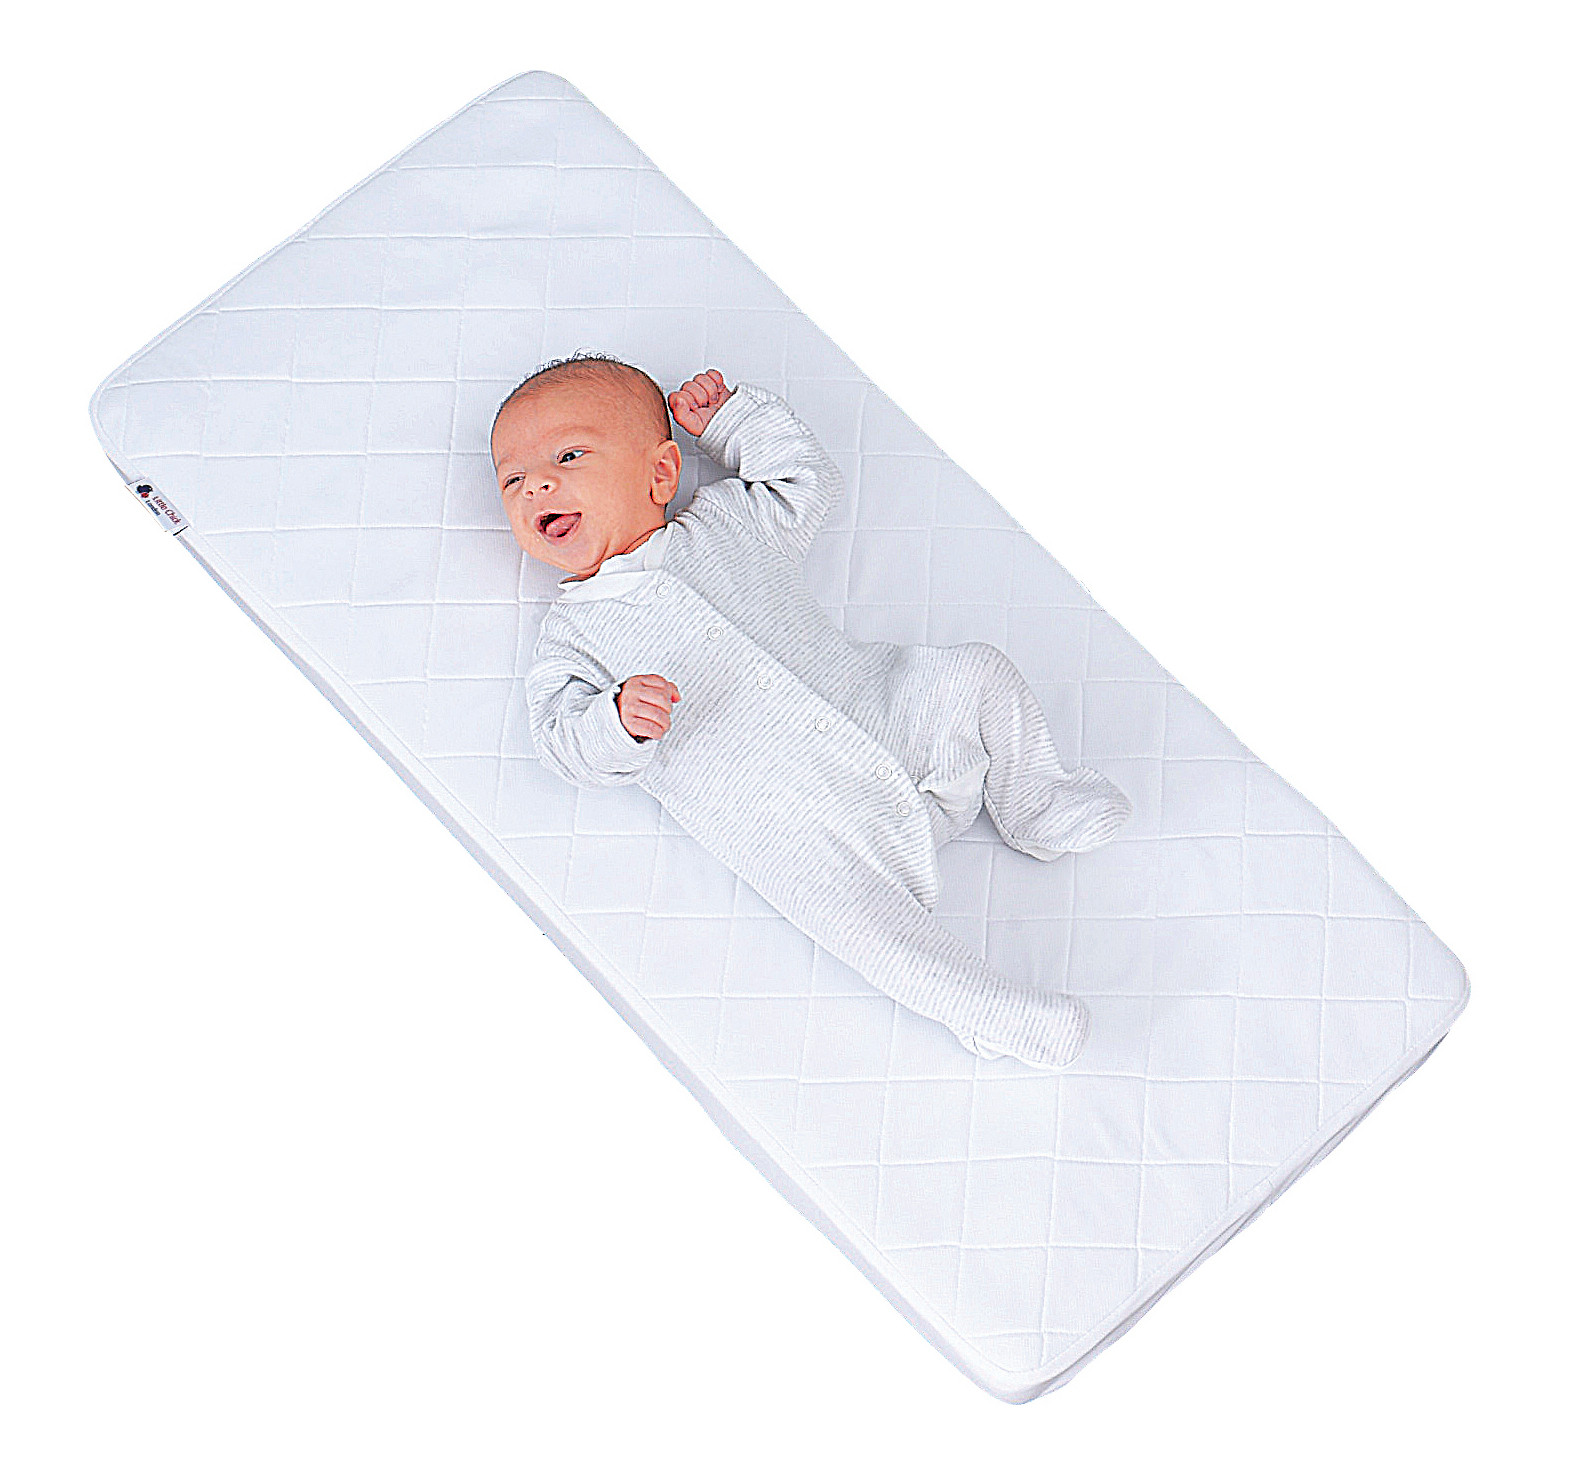 design mattress organic wovenaire house amazon crib breathable newton with your bedroom dazzling